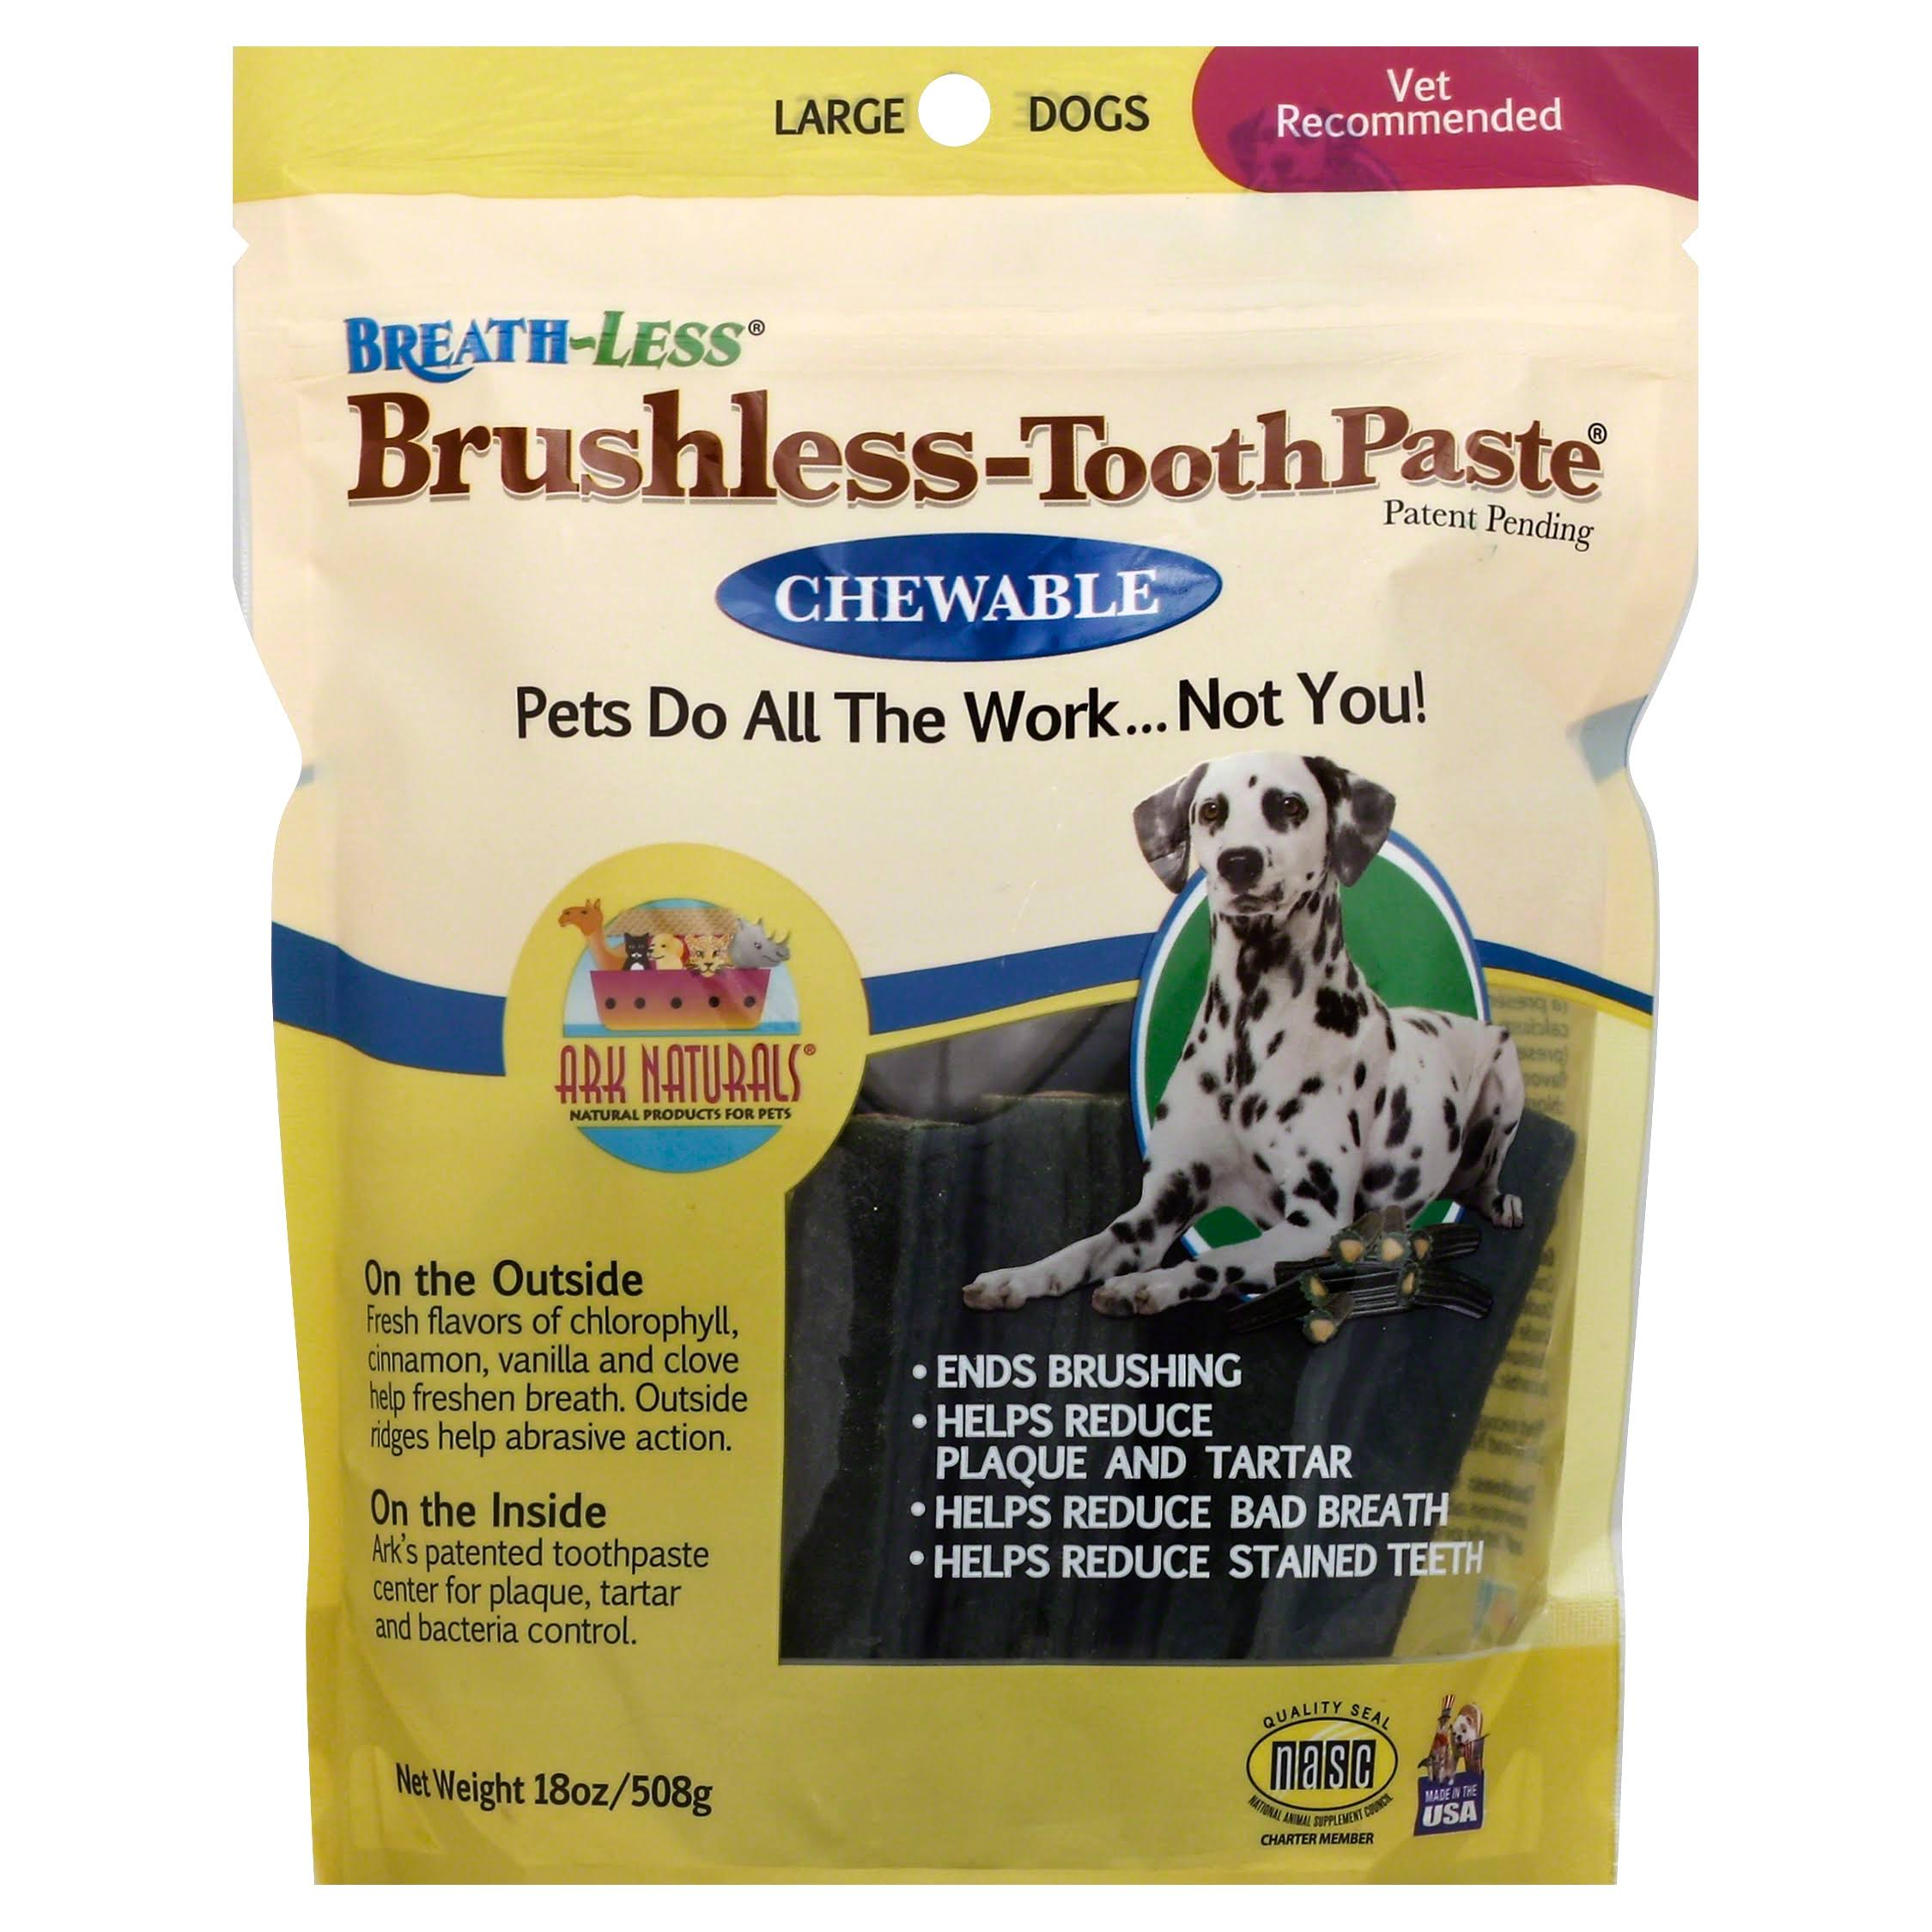 Ark Naturals Breathless Brushless Dog Toothpaste - Chewable, Large, 18oz